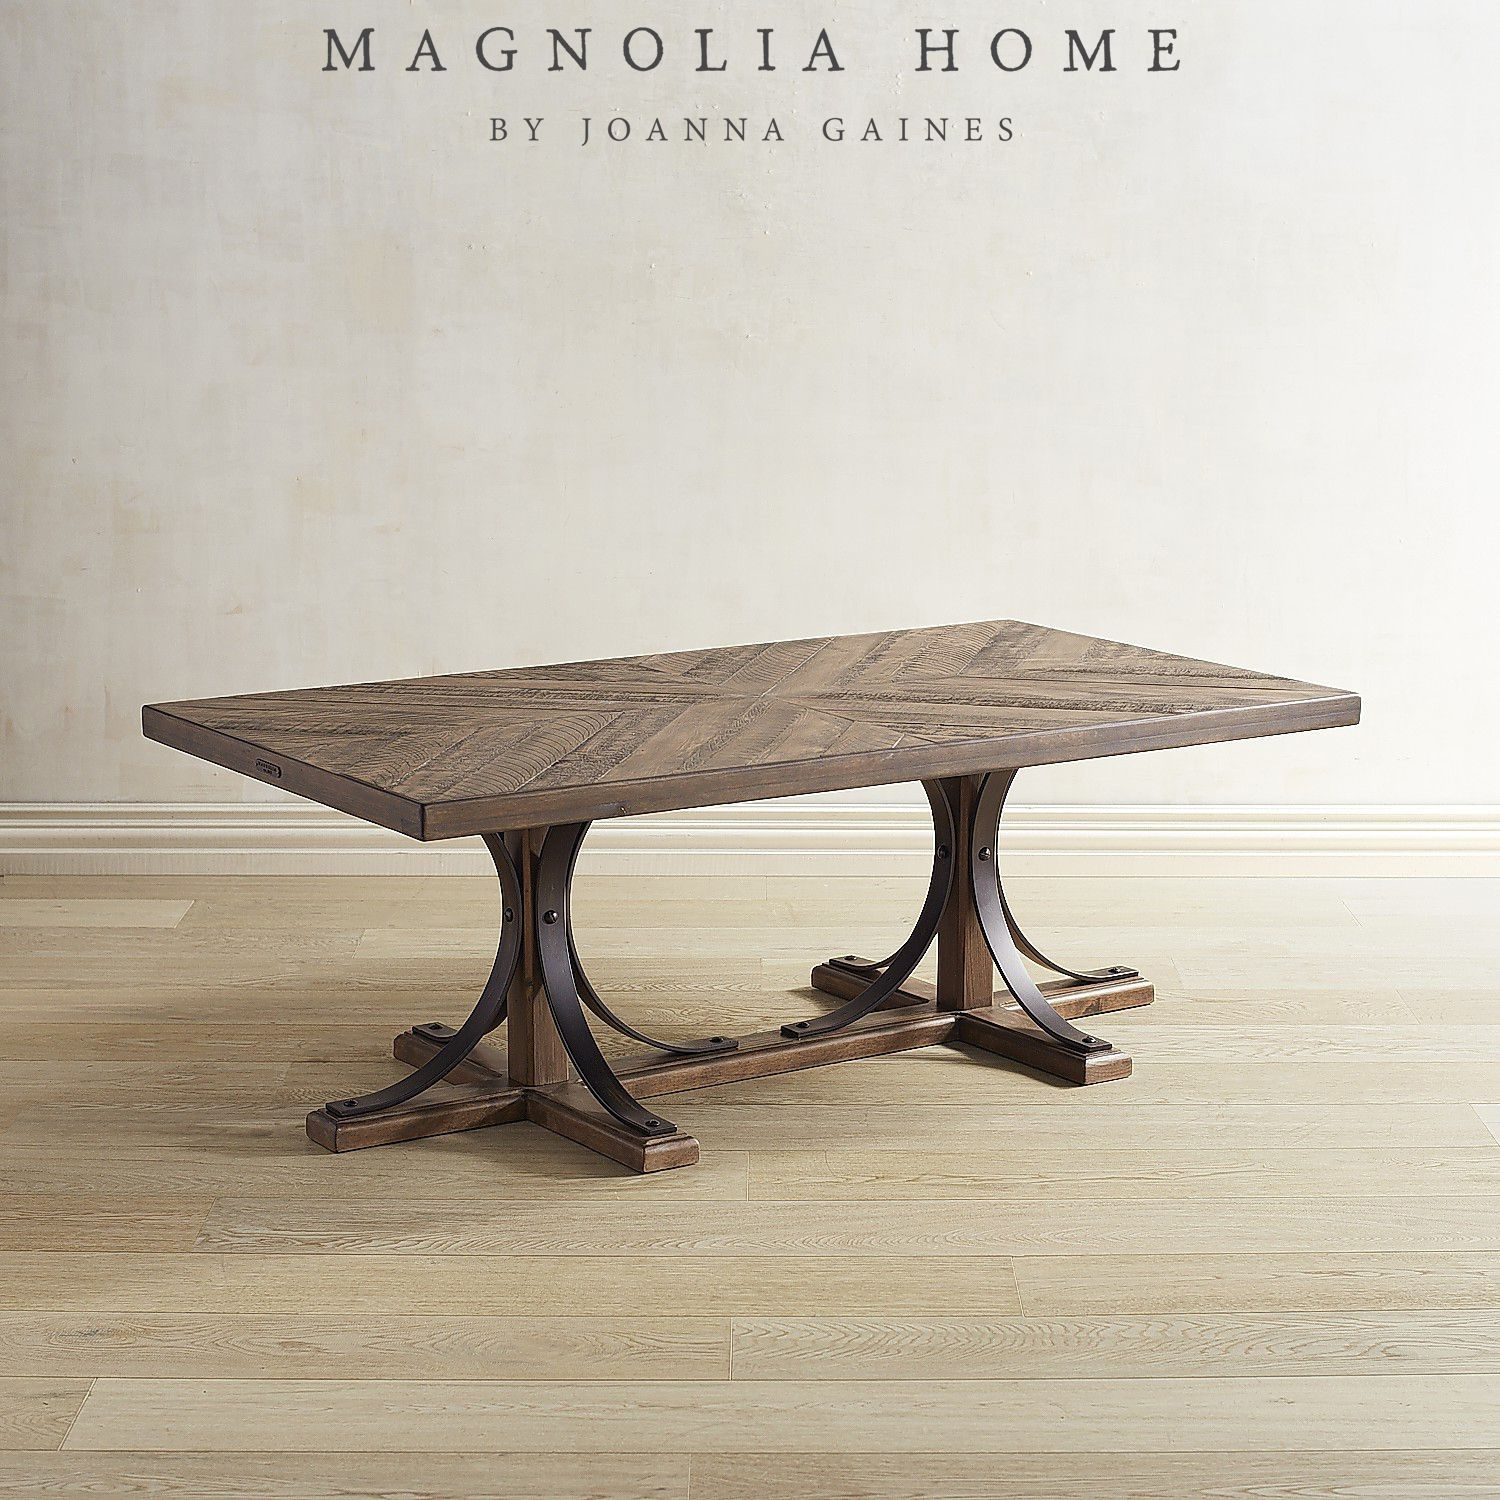 Magnolia Home Iron Trestle Shop Floor Coffee Table Brown | Diy Regarding 2018 Magnolia Home Shop Floor Dining Tables With Iron Trestle (Photo 12 of 20)